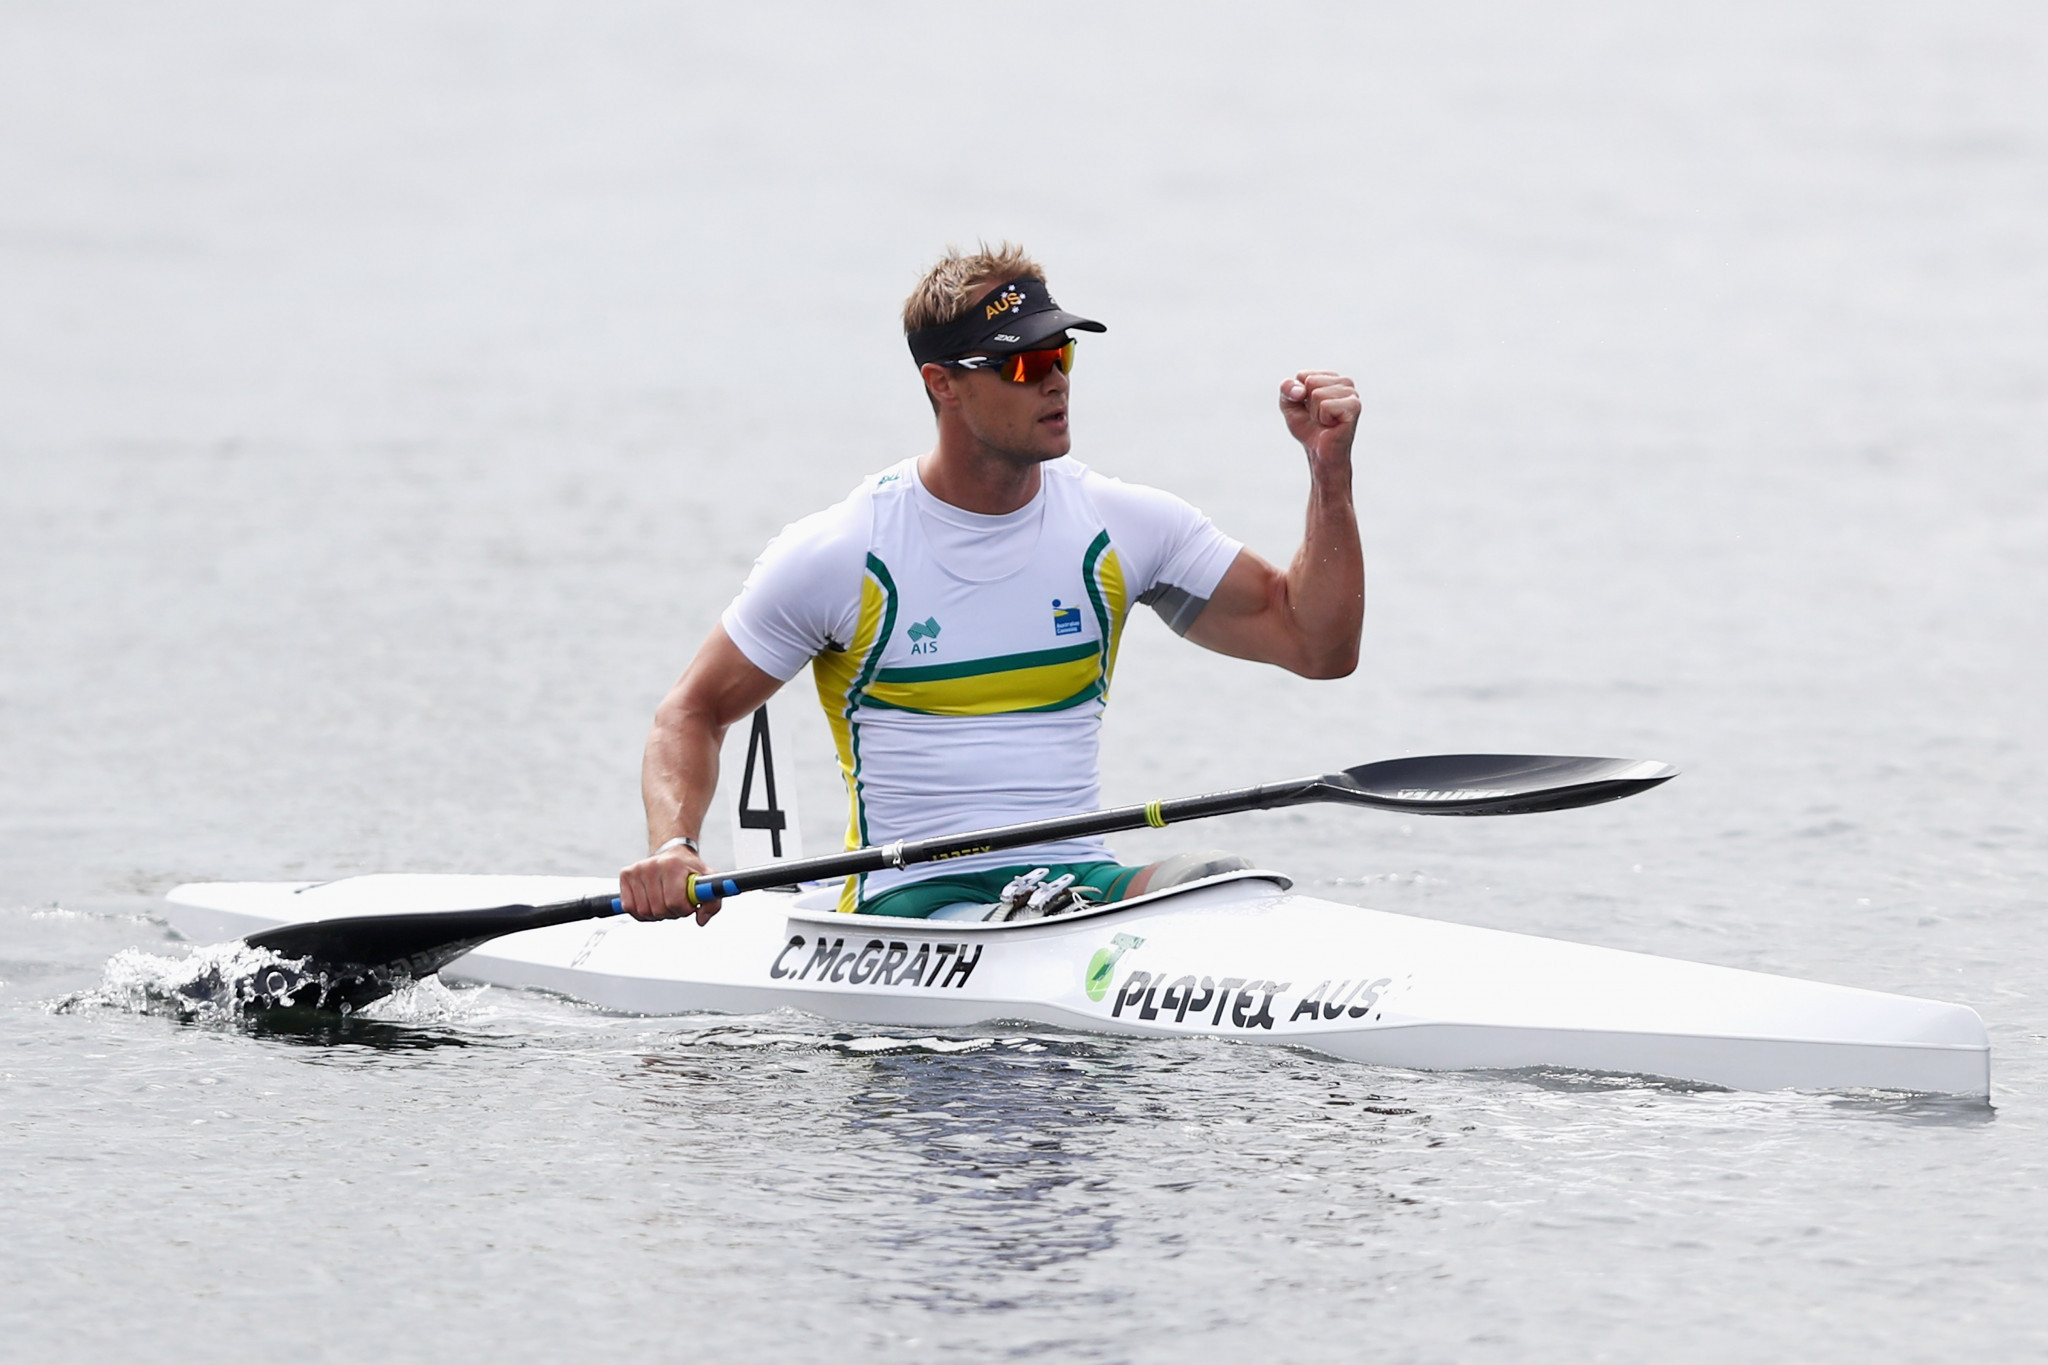 World champions McGrath and Yemelianov aim for successful canoe Paralympic title defences at Tokyo 2020